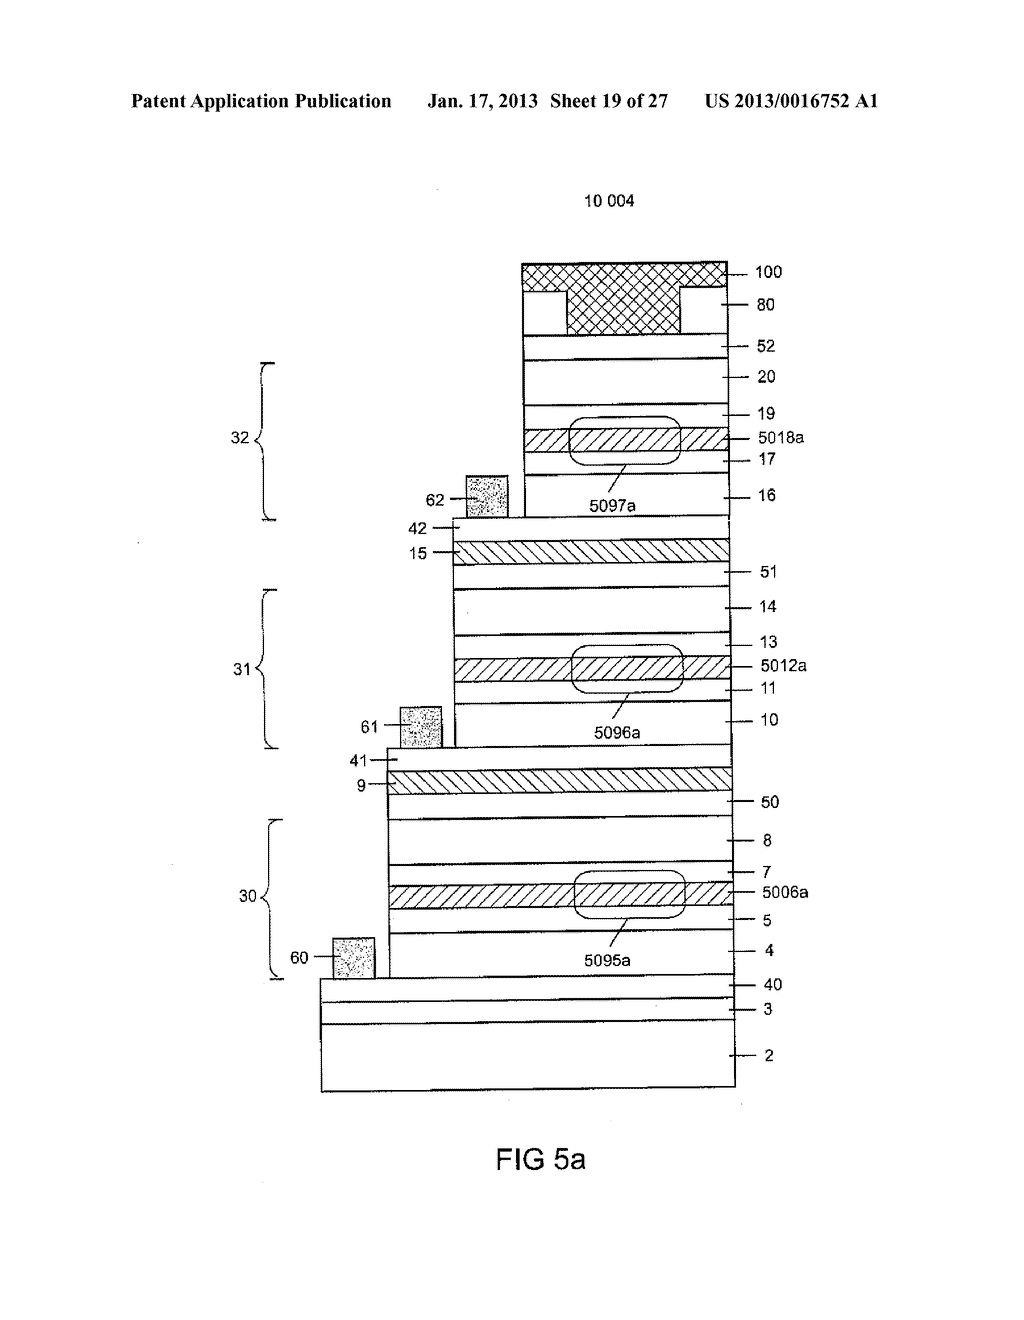 Laser Diode Assembly and Method for Producing a Laser Diode AssemblyAANM Lell; AlfredAACI Maxhutte-HaidhofAACO DEAAGP Lell; Alfred Maxhutte-Haidhof DEAANM Straussburg; MartinAACI DonaustaufAACO DEAAGP Straussburg; Martin Donaustauf DE - diagram, schematic, and image 20